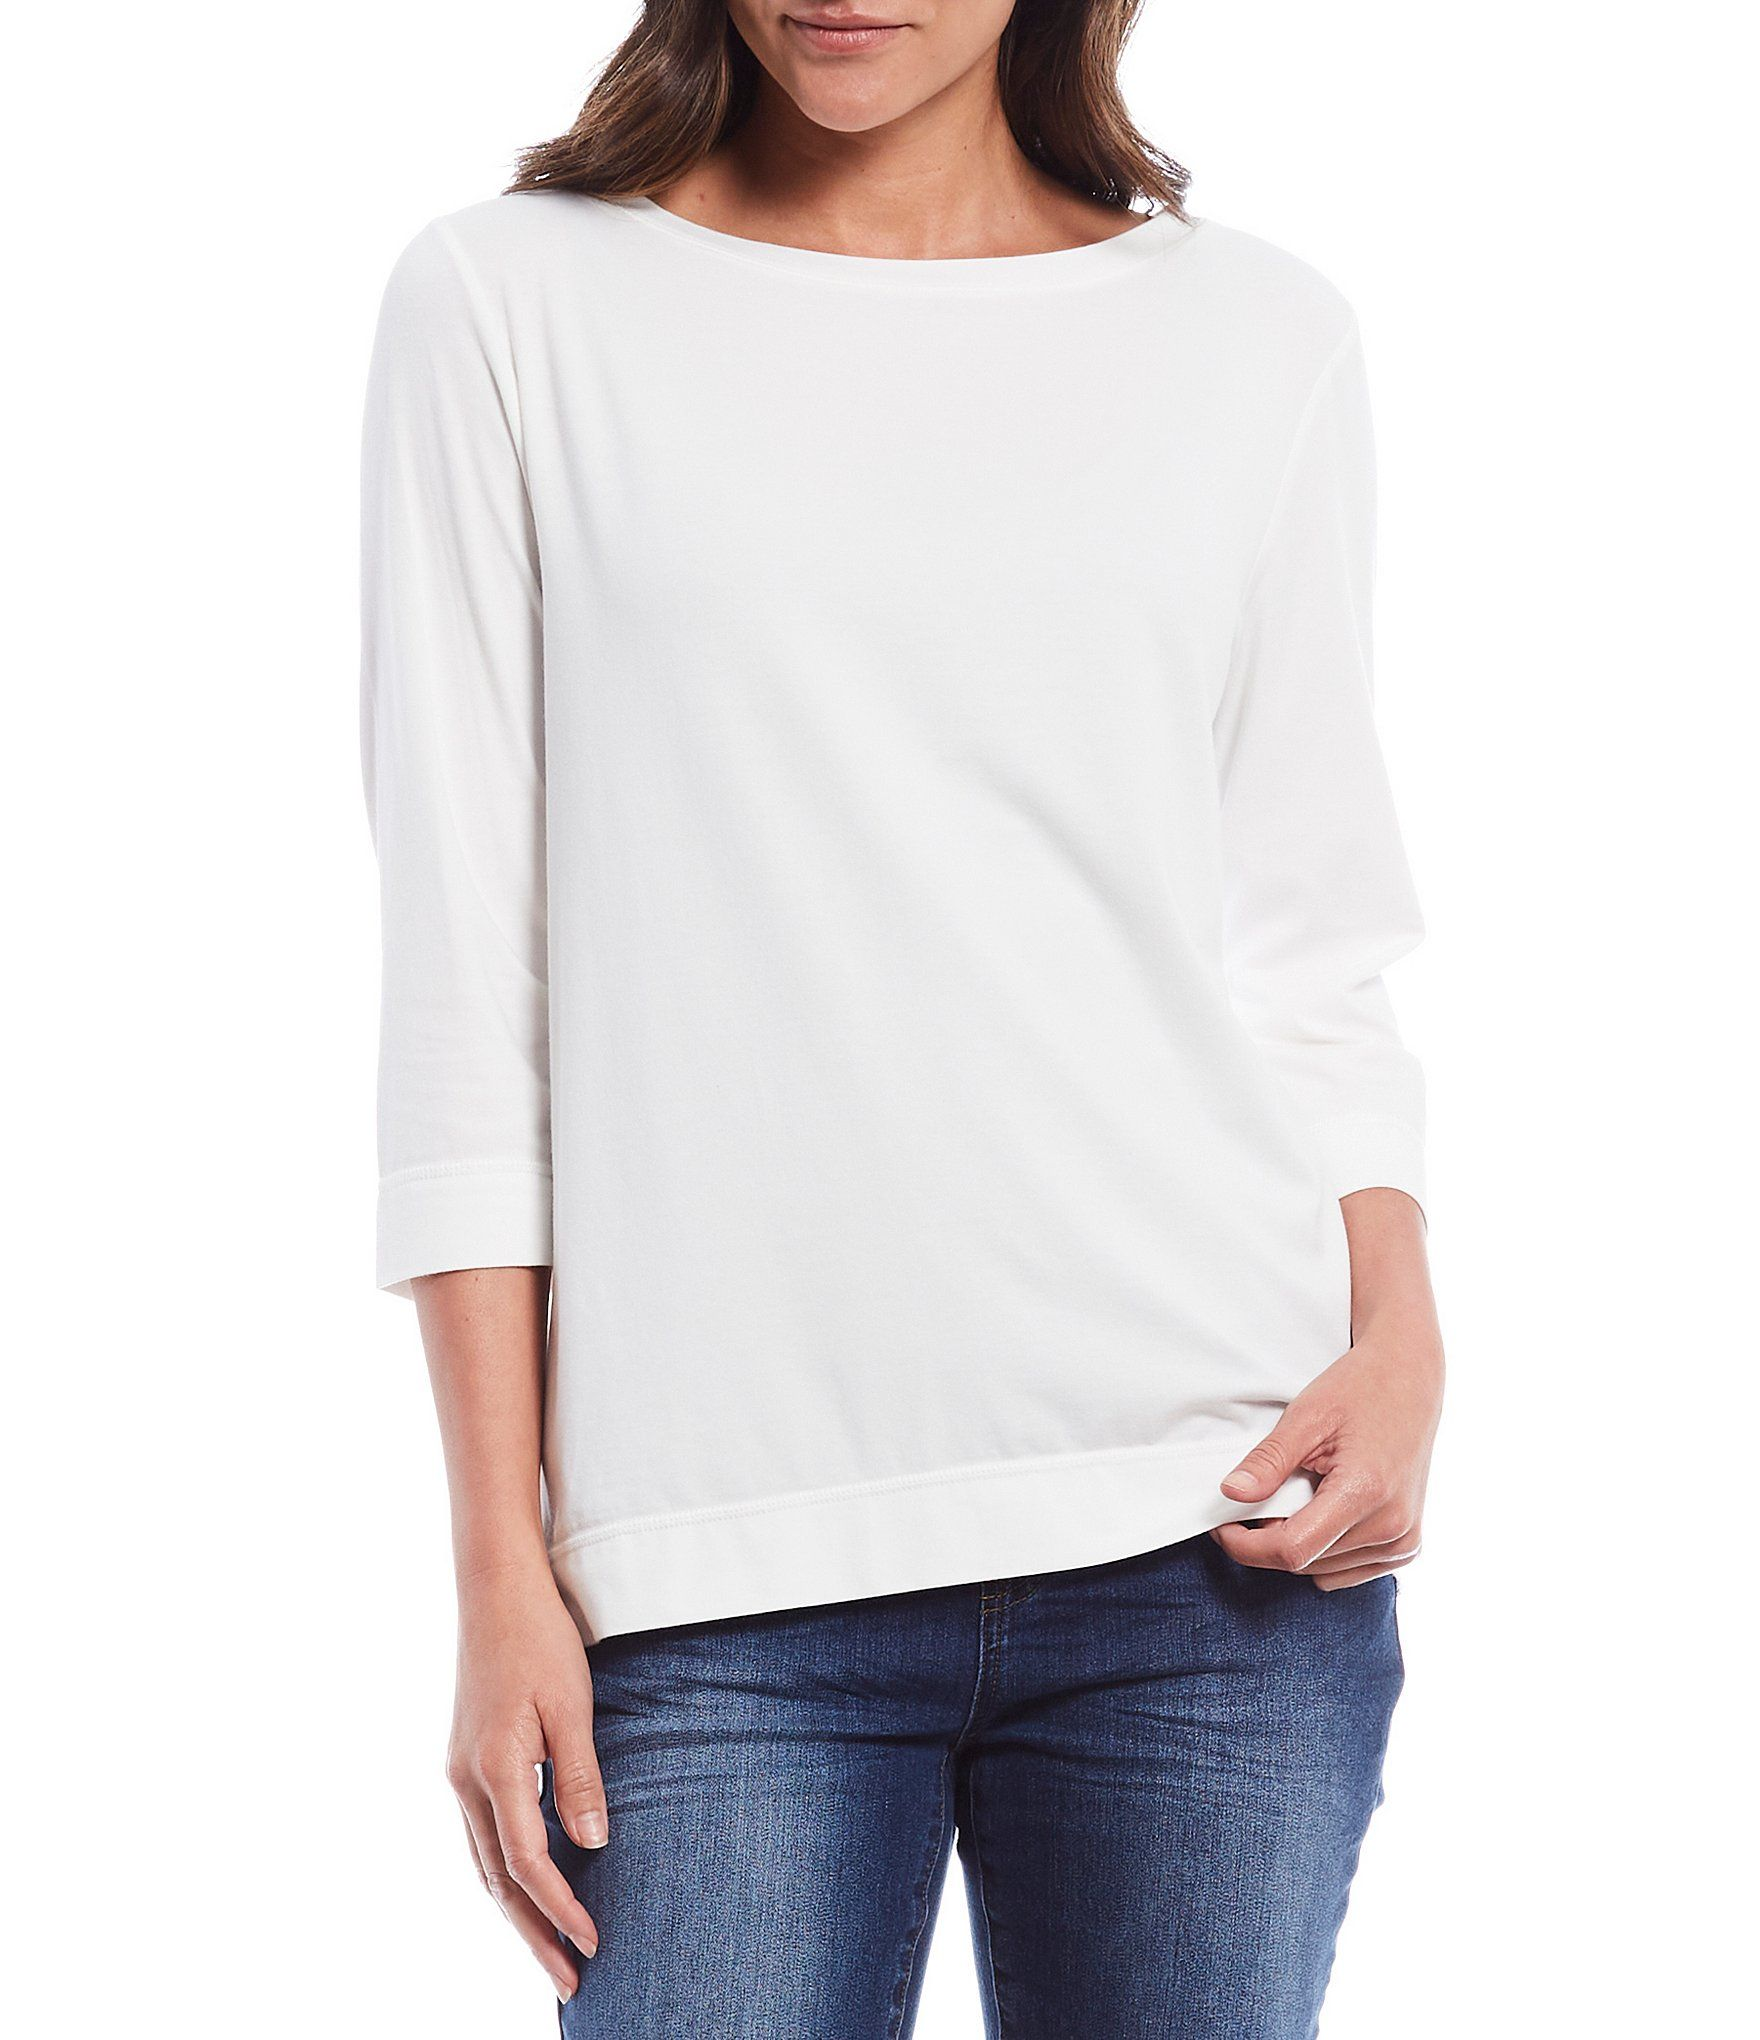 From Westbound, this tee features:Boat neckline3/4 sleevesstraight hemline pullover constructionCotton/modal/spandexMachine washImported.